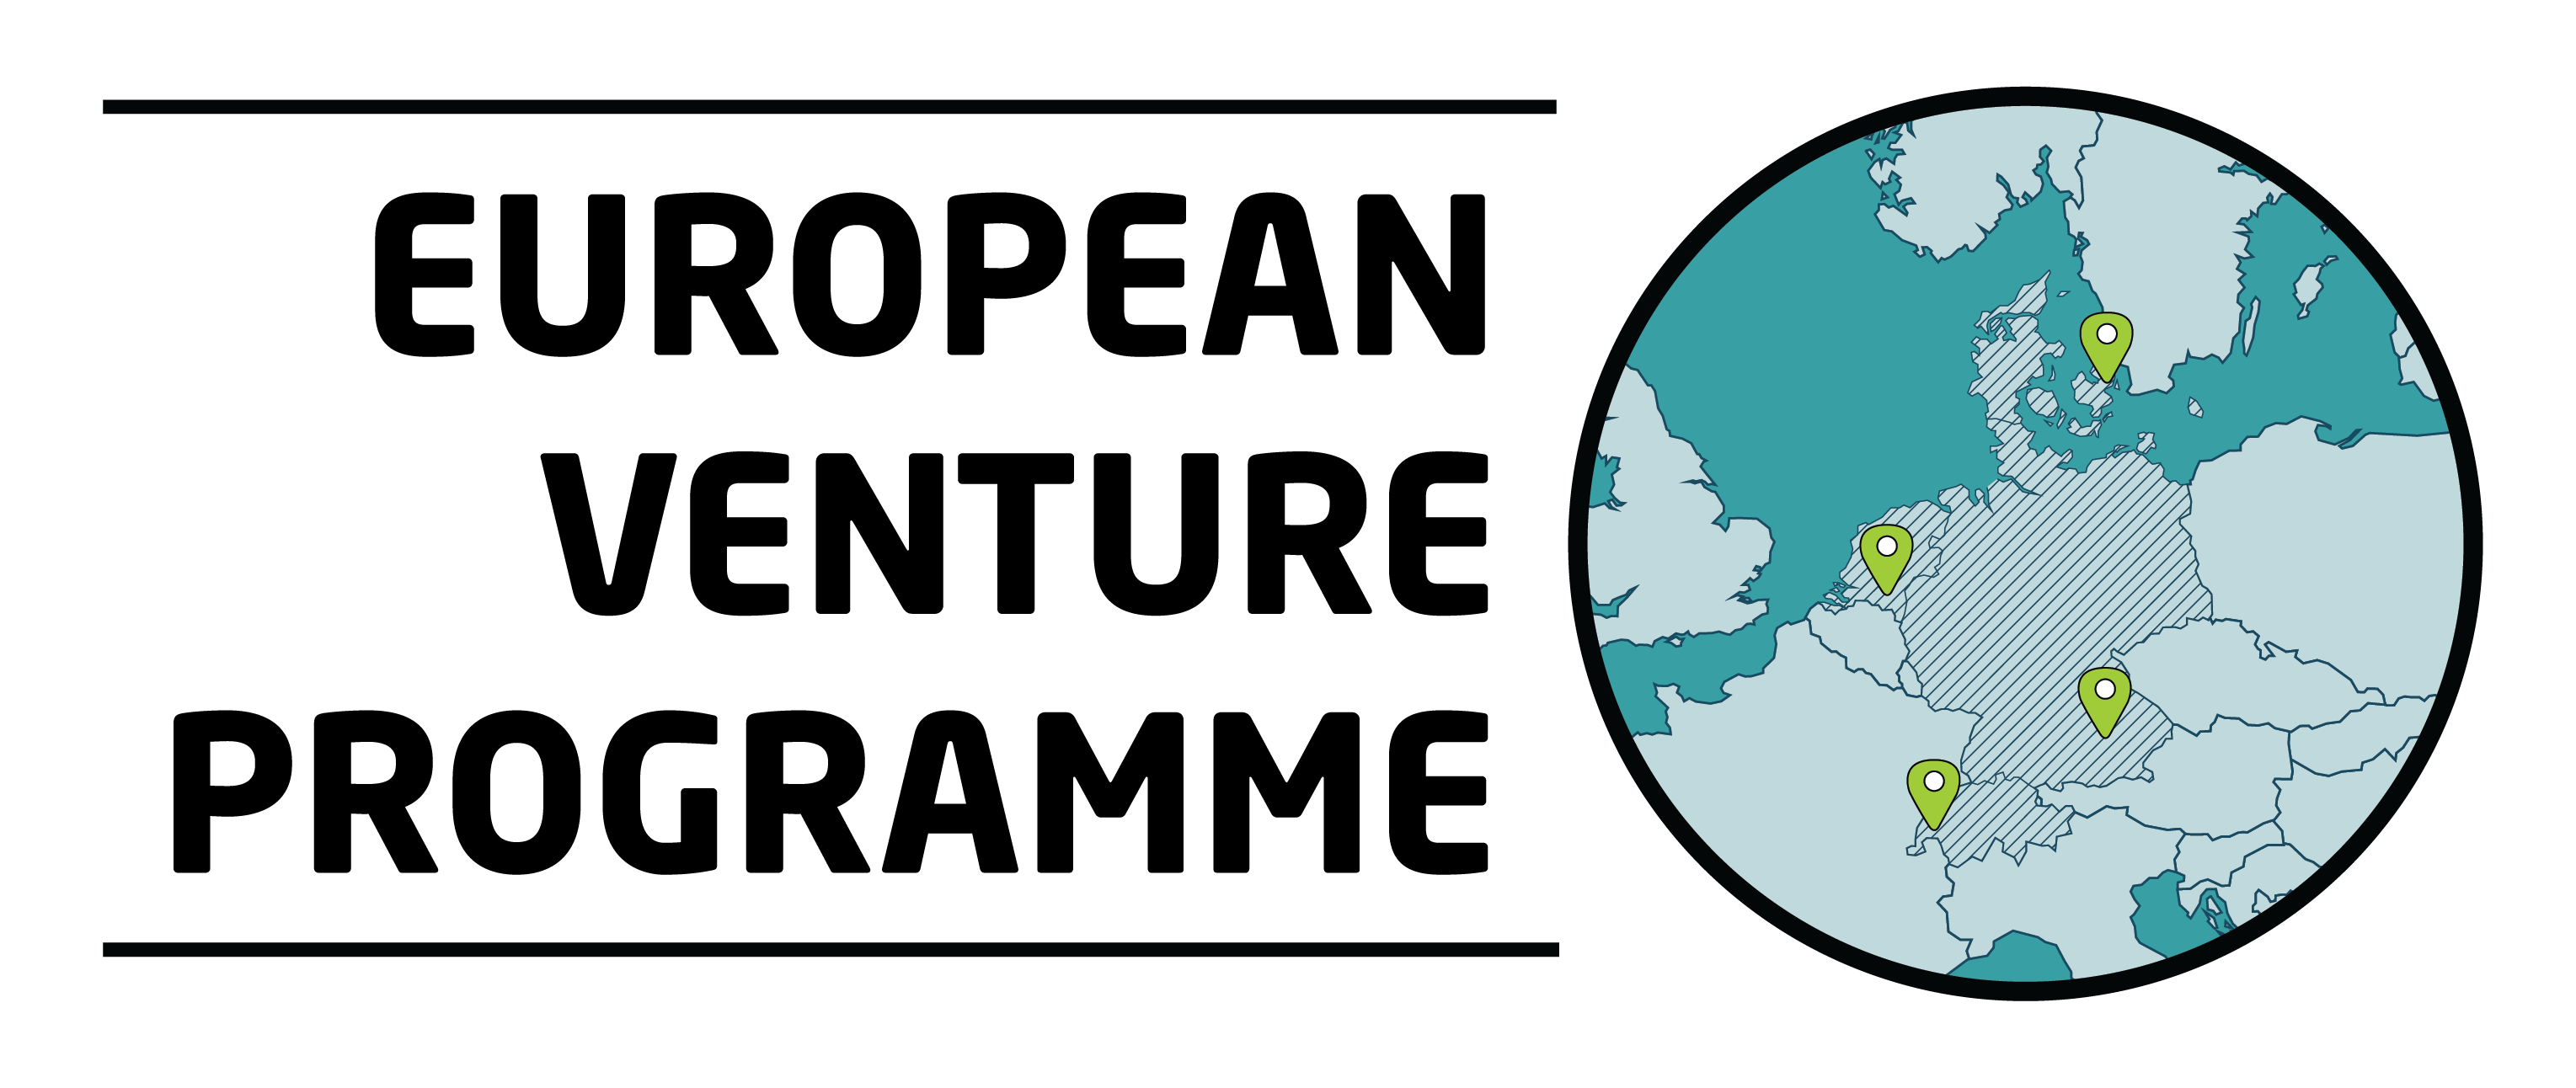 The European Venture Programme - Eurotech Universities